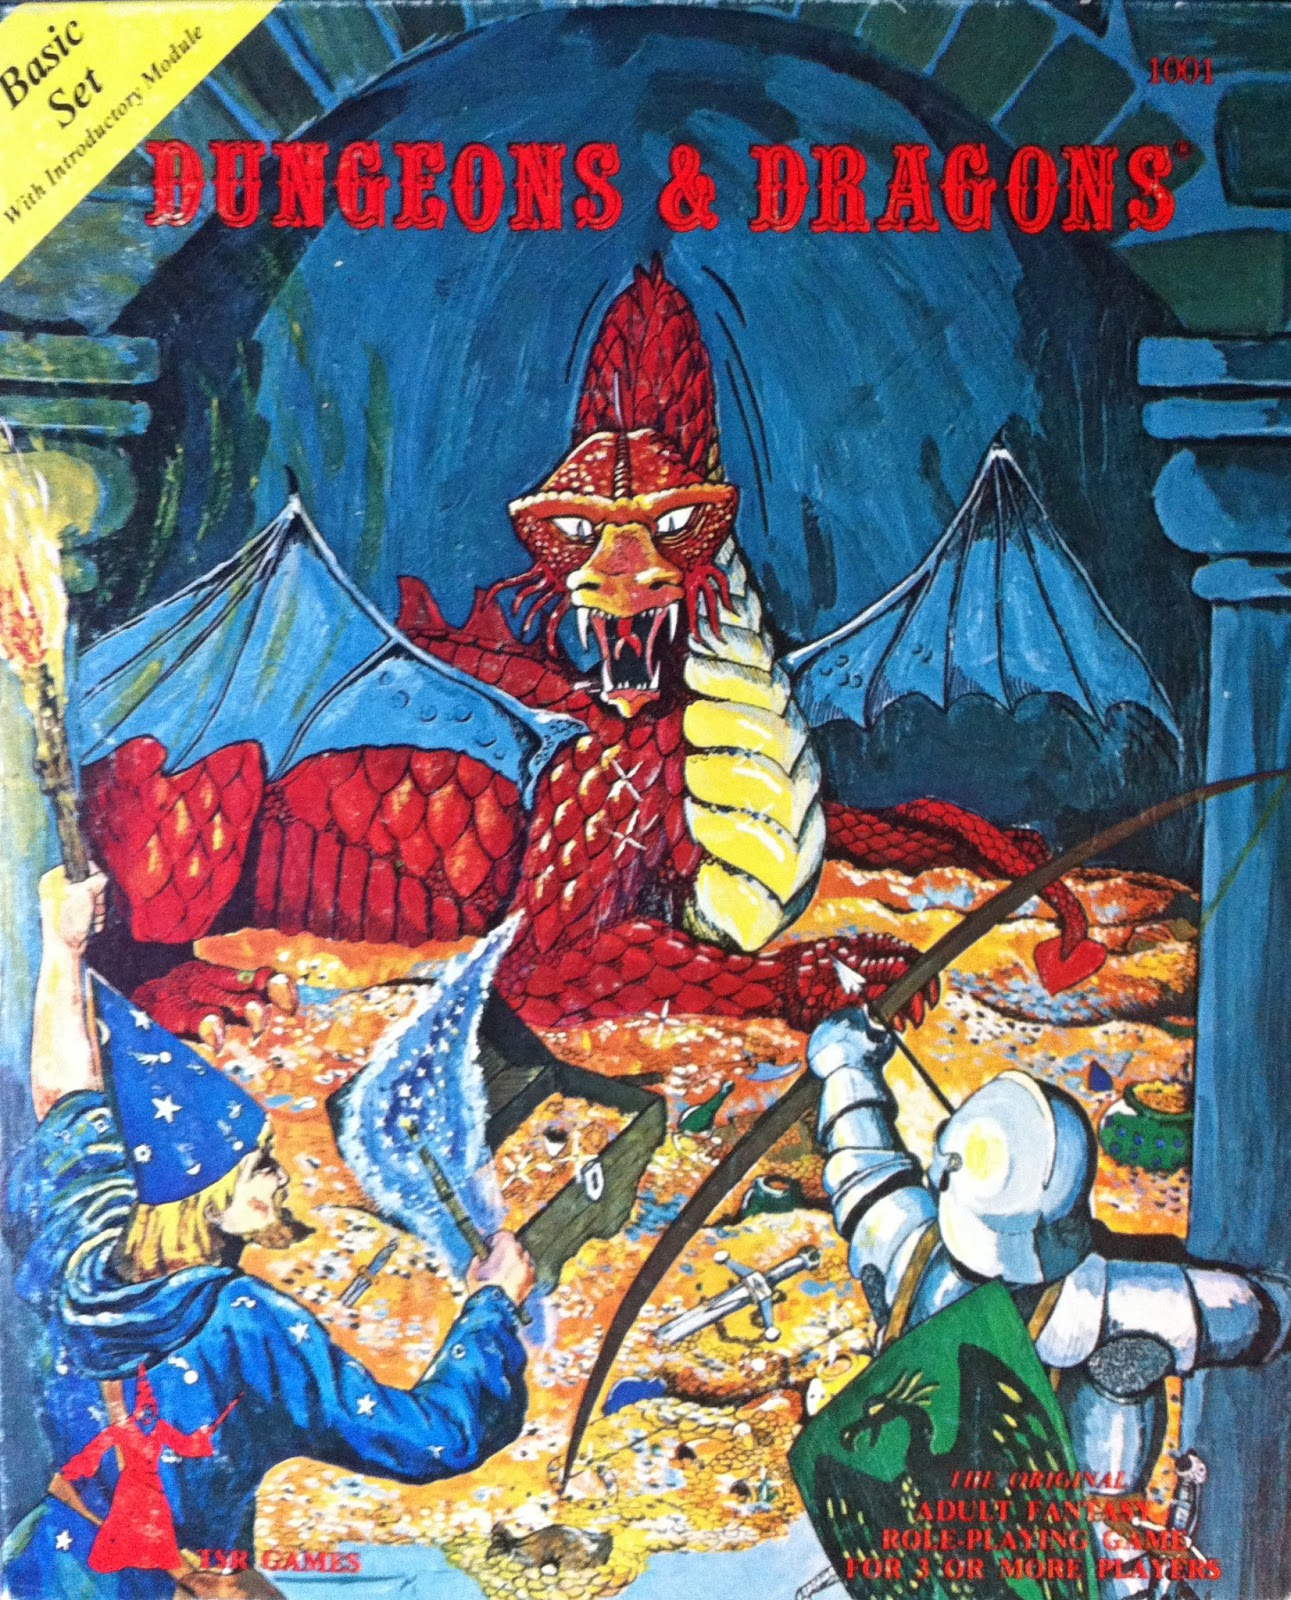 Through the Ages: Dungeons & Dragons Cover Art - SHANE PLAYS